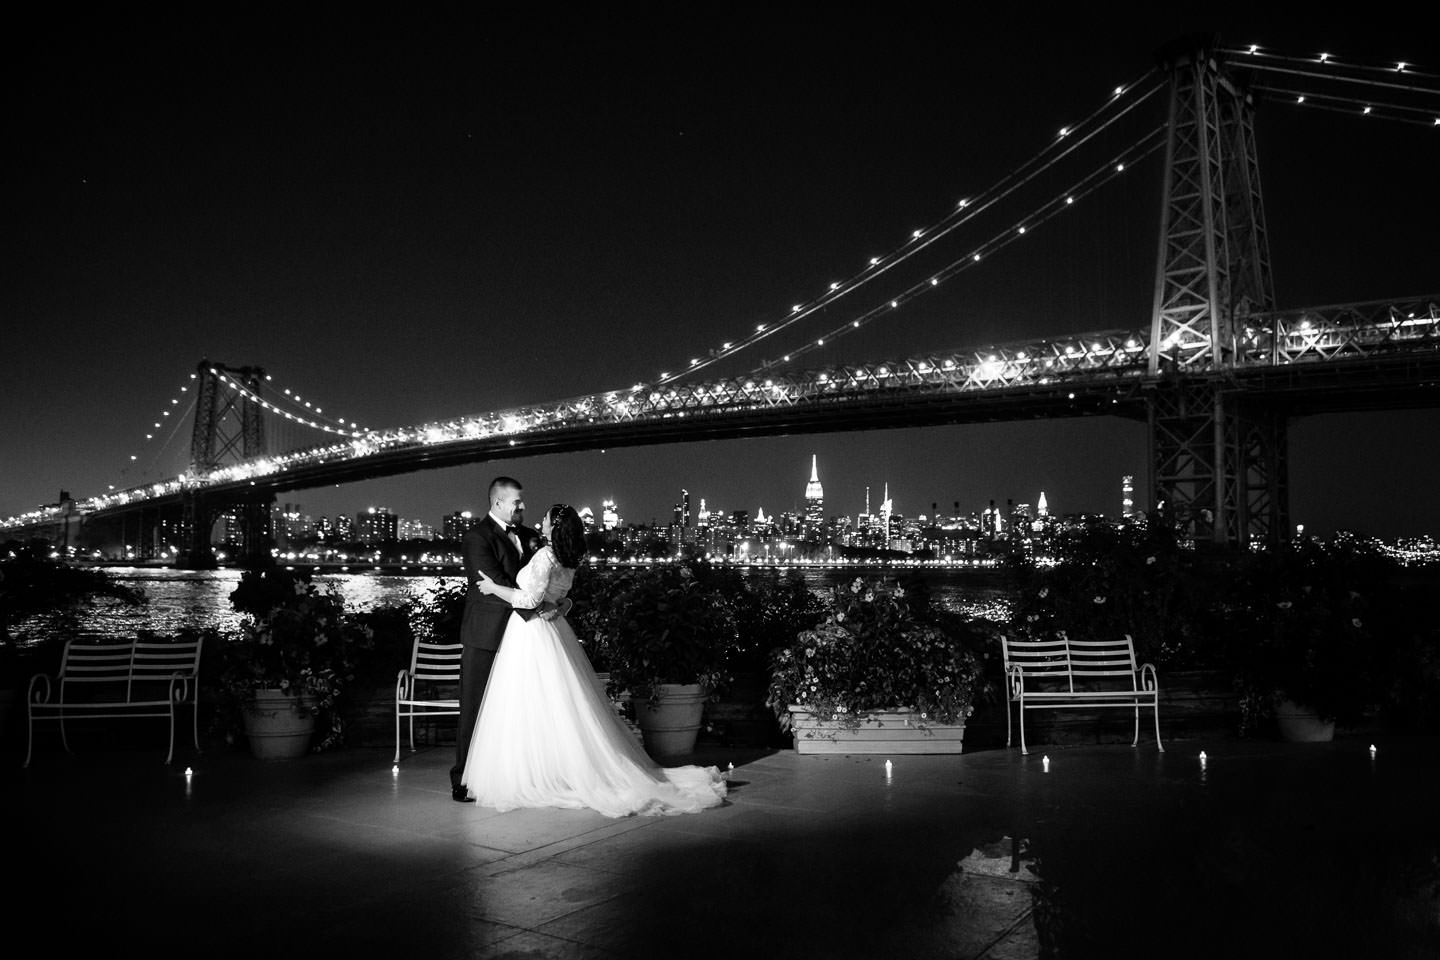 Bride and groom at night with NYC skyline in the background taken at wedding at Giando on the Water restaurant in Brooklyn